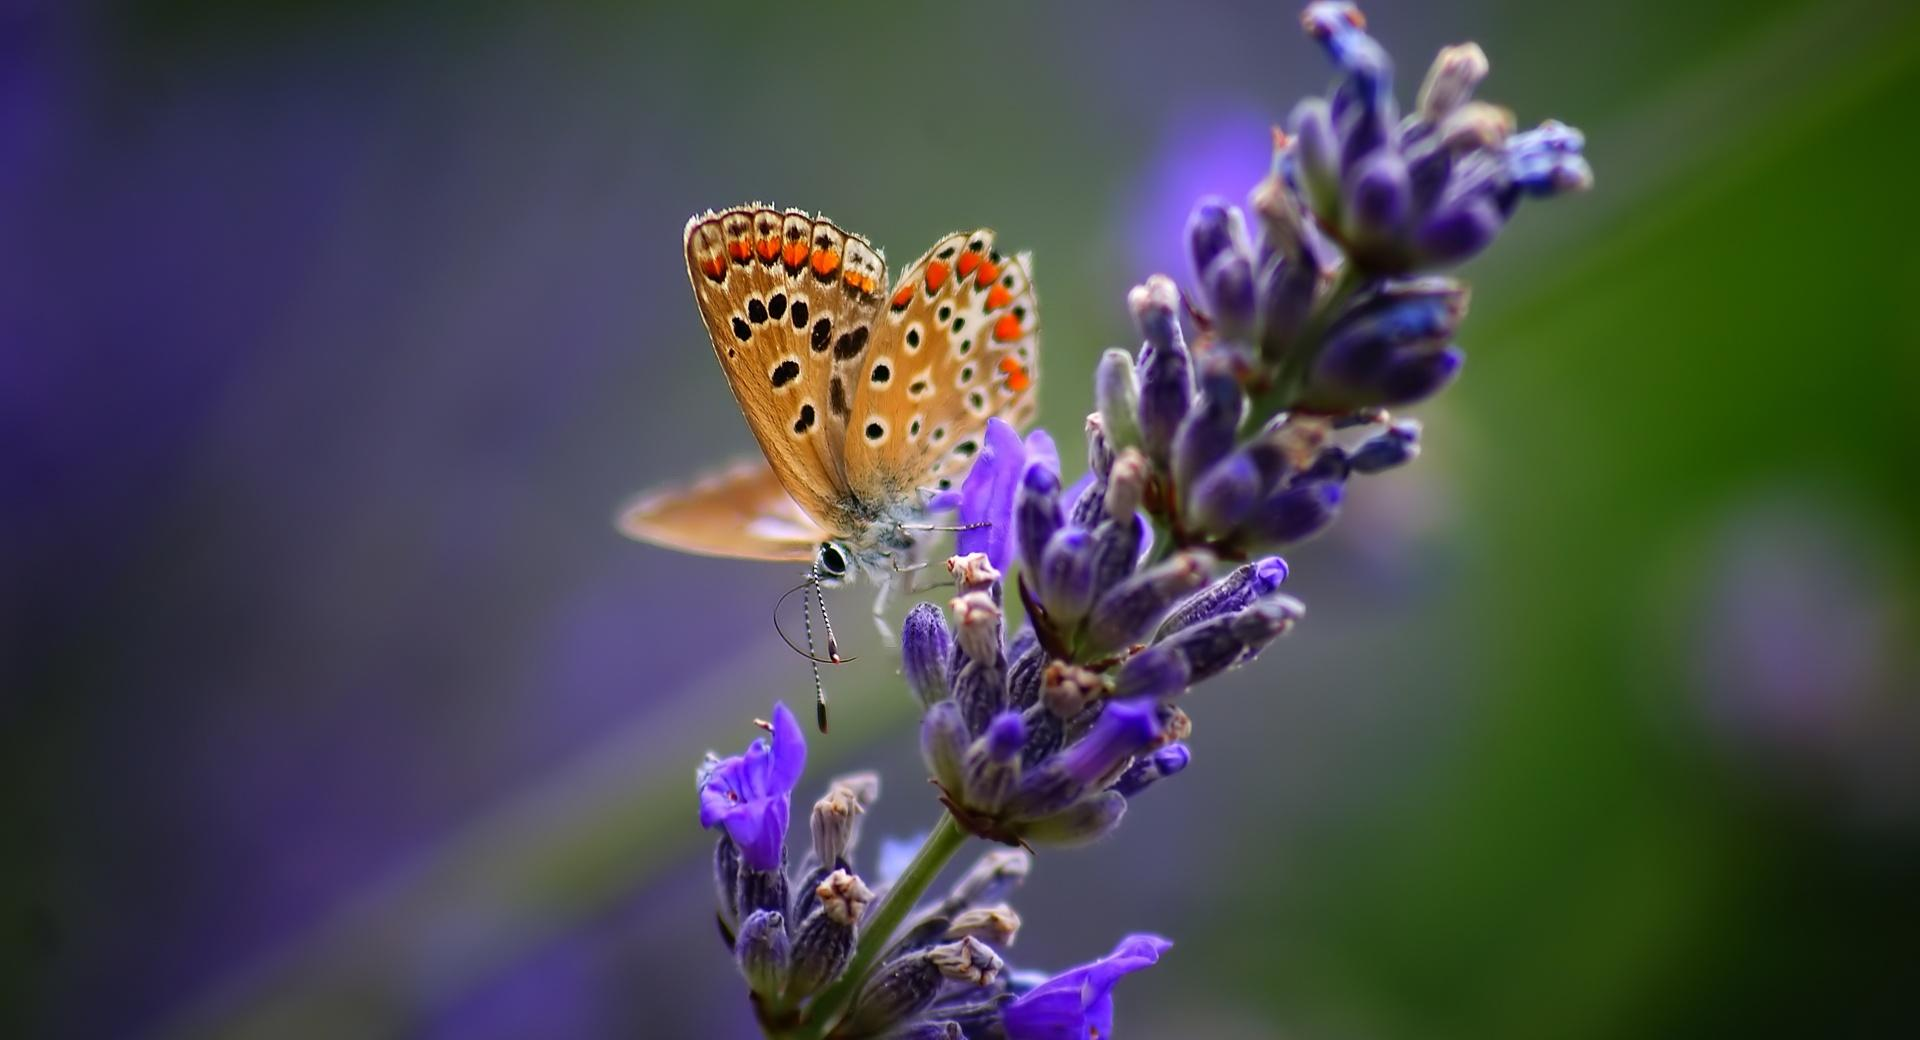 Butterfly On Lavender Flower wallpapers HD quality